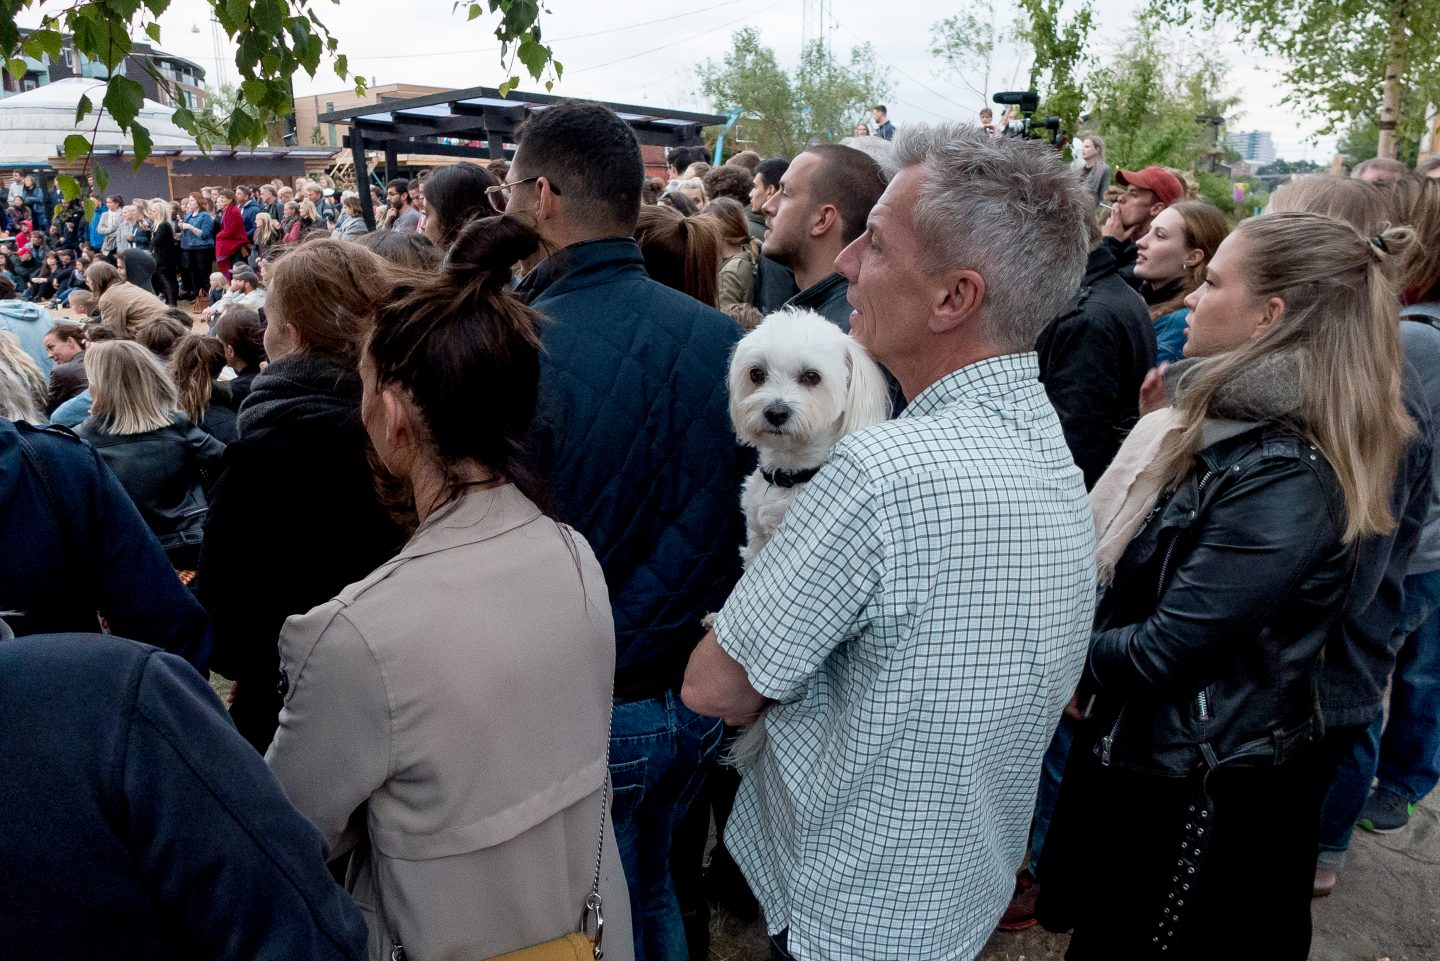 A dog and its owner observe the festivities.